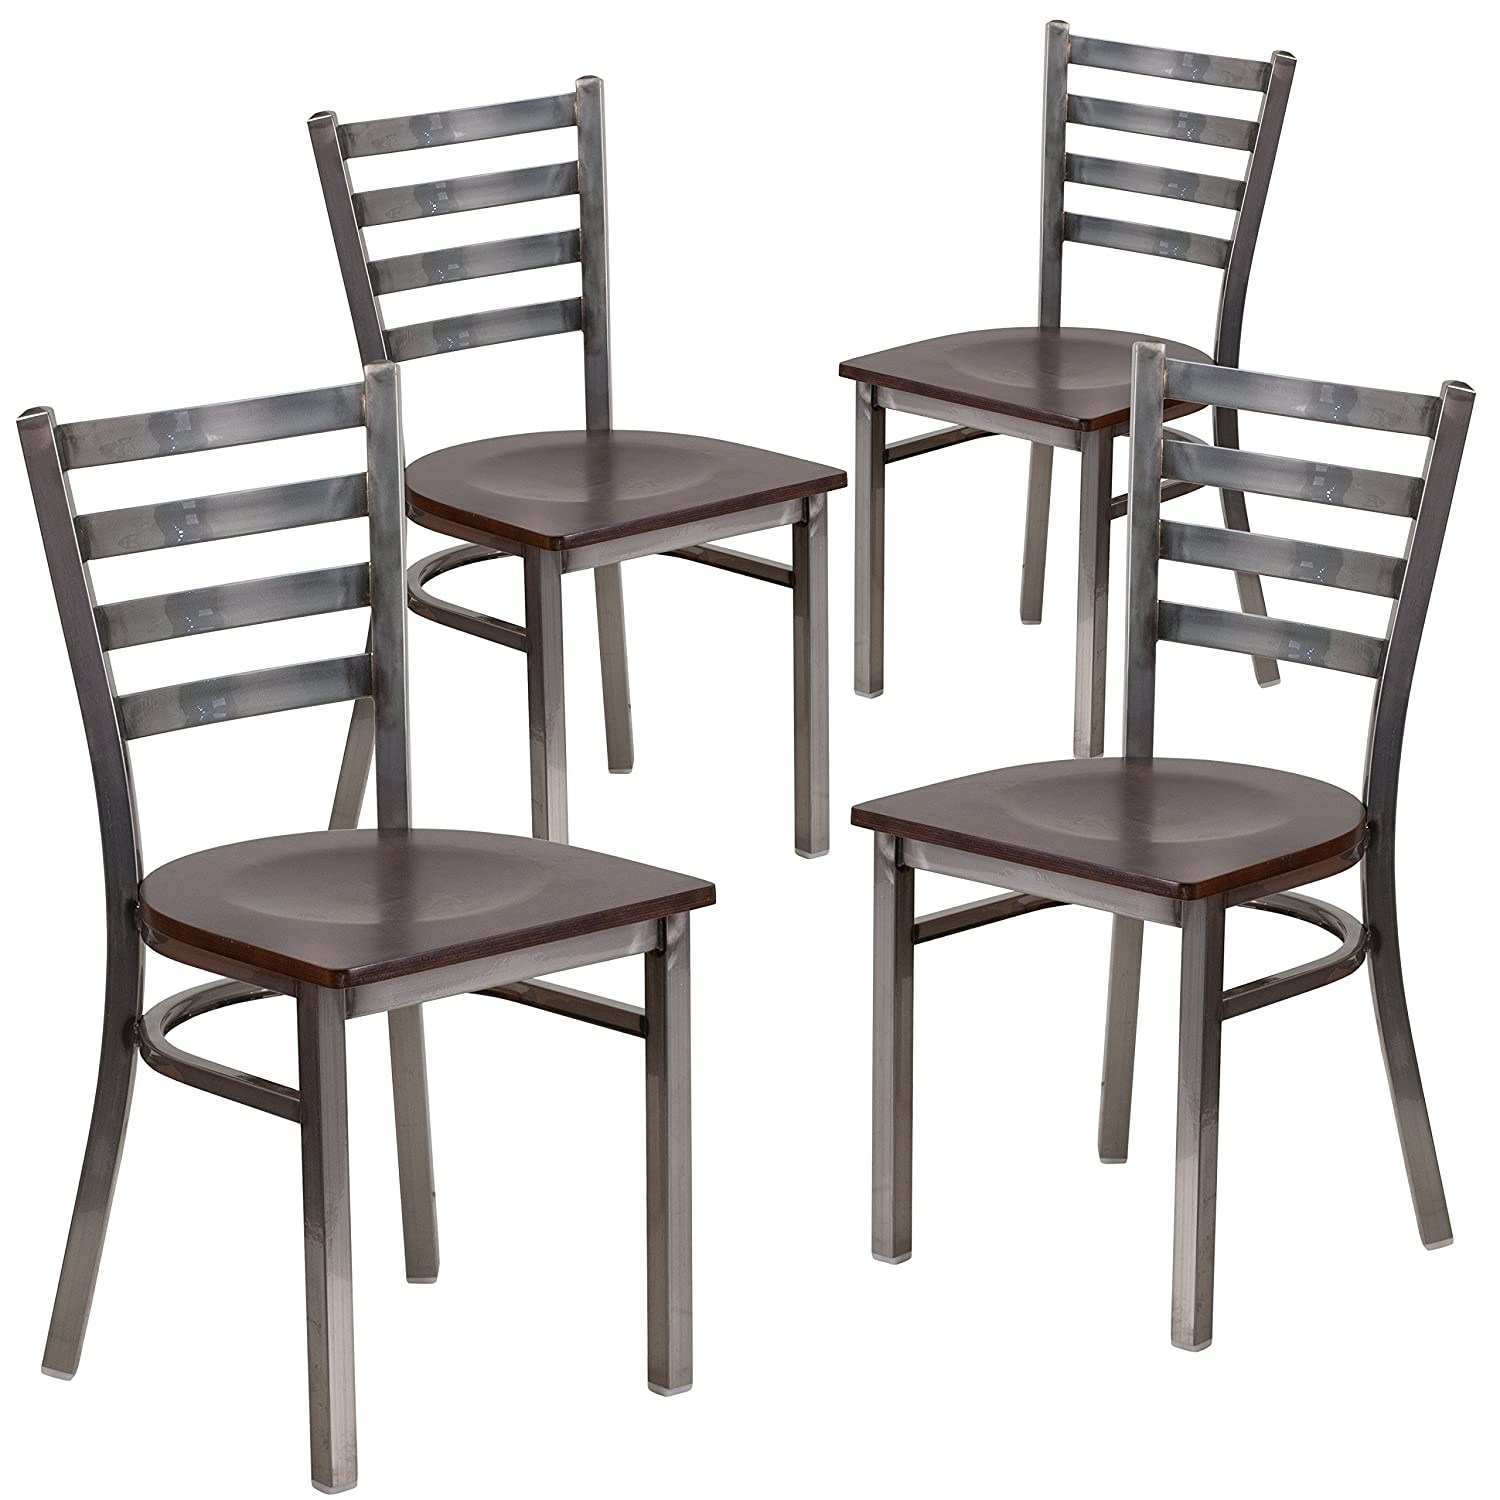 Flash Furniture 4 Pk. HERCULES Series Clear Coated Ladder Back Metal Restaurant Chair – Walnut Wood Seat